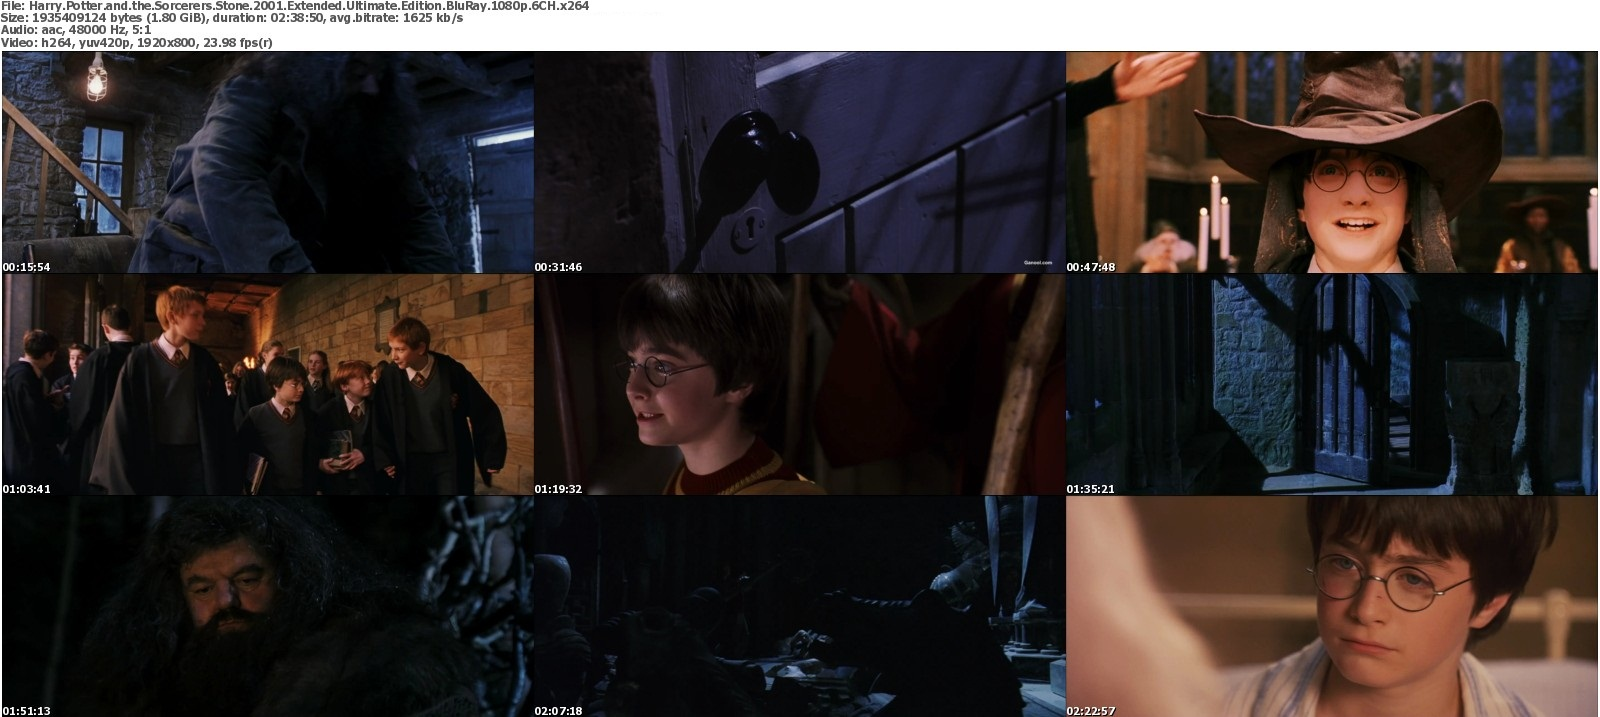 harry potter and the sorcerers stone torrent download with english subtitles